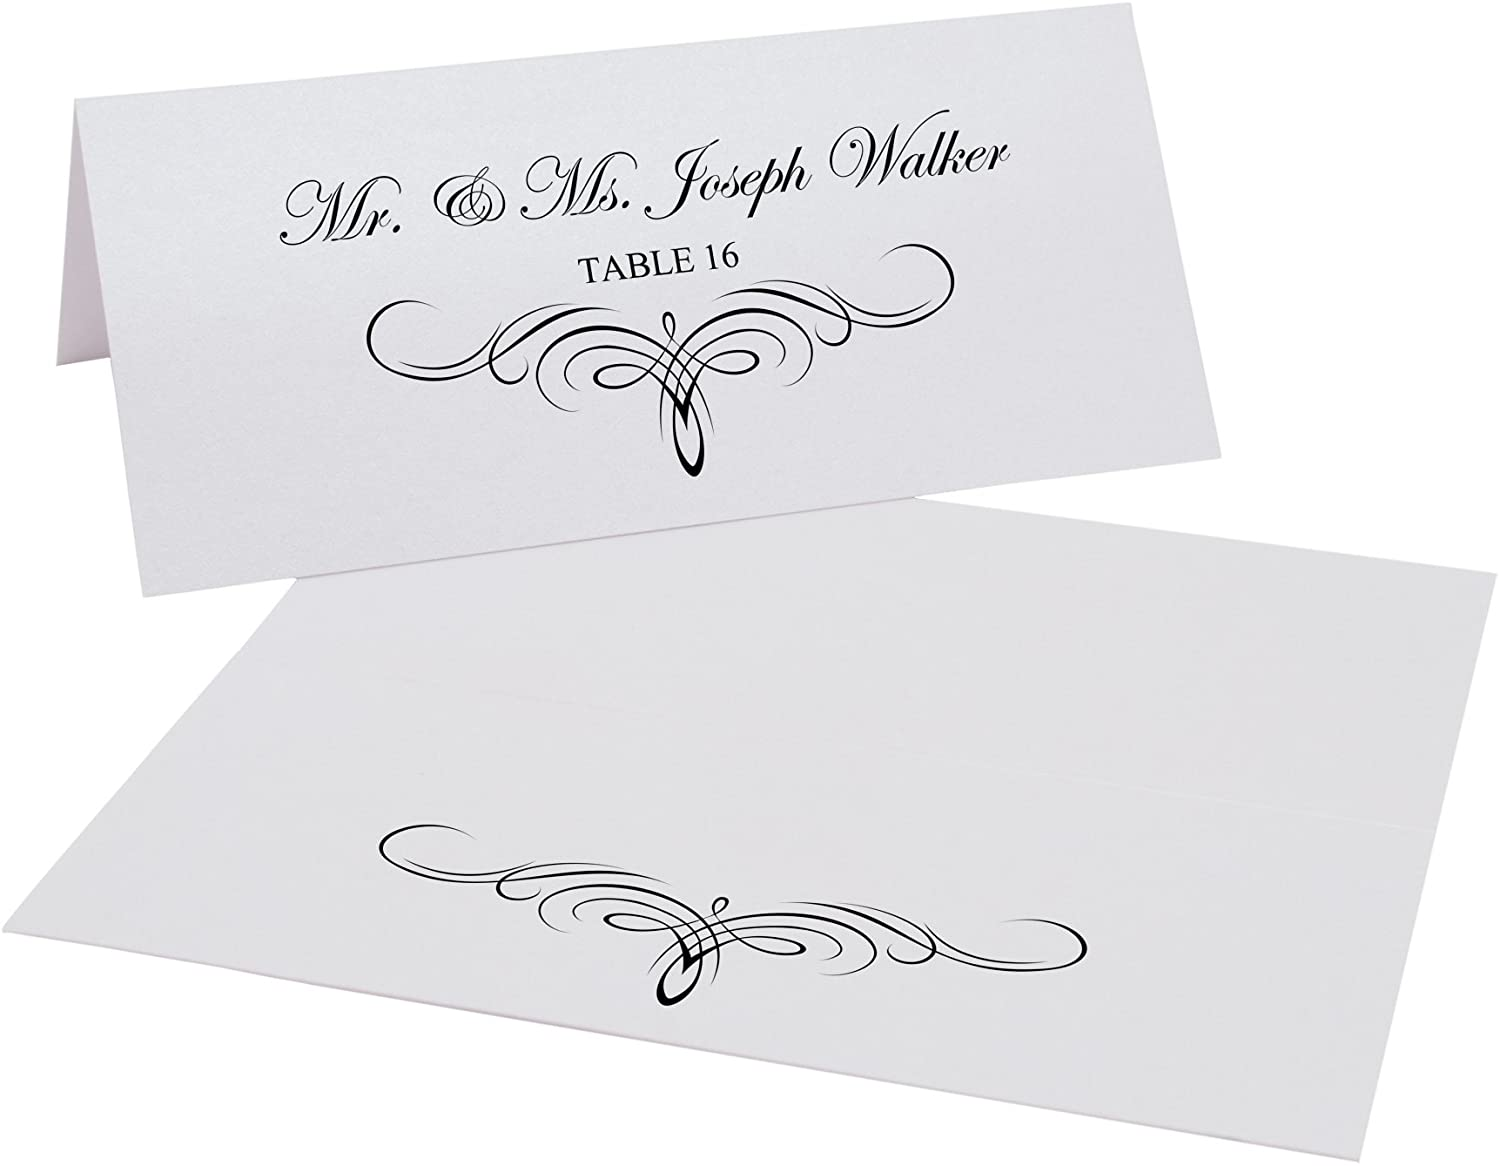 Decadent Flourish Printable Place Cards, Black, Set of 60 (10 Sheets), Laser & Inkjet Printers - Perfect for Wedding, Parties, and Special Events